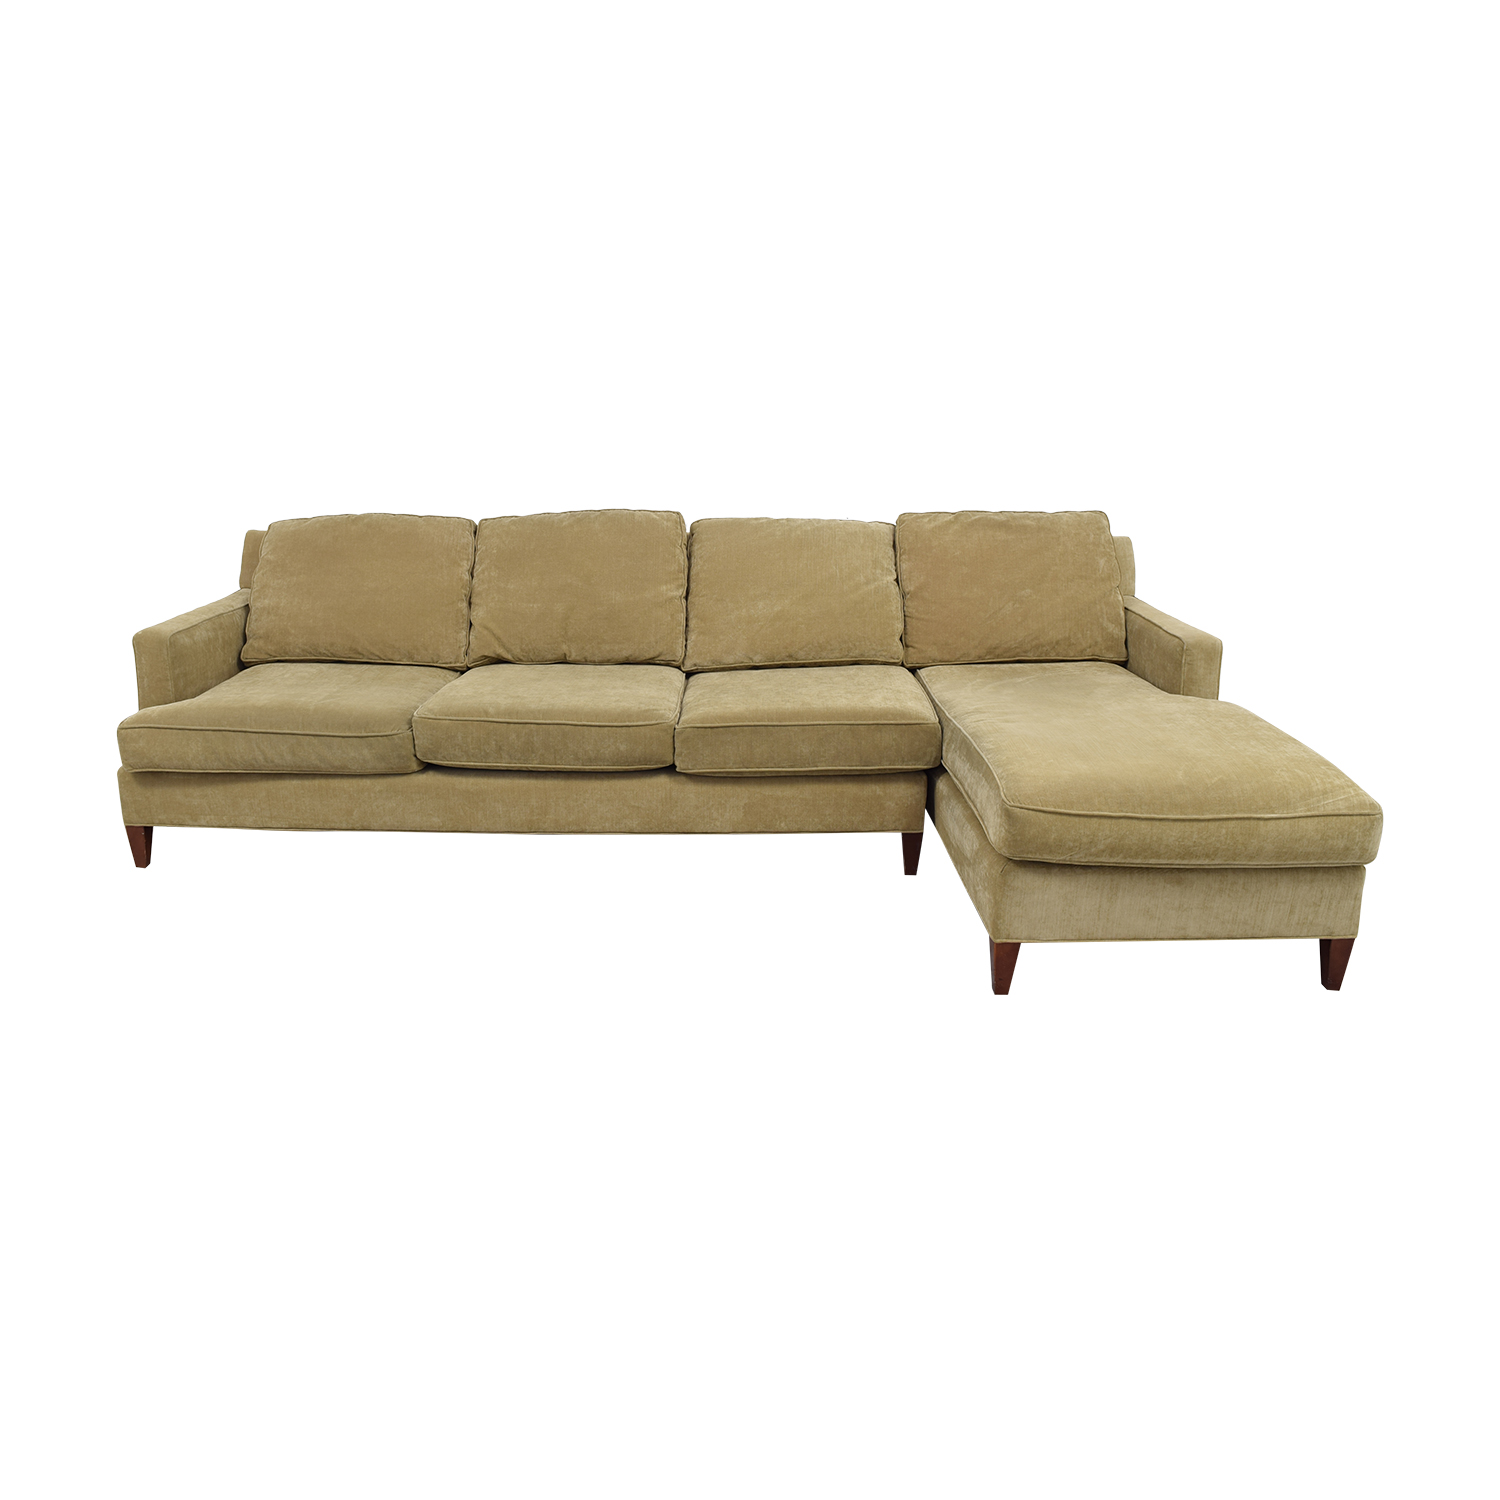 Mitchell Gold + Bob Williams Mitchell Gold + Bob Williams Beige Chaise Sectional Beige